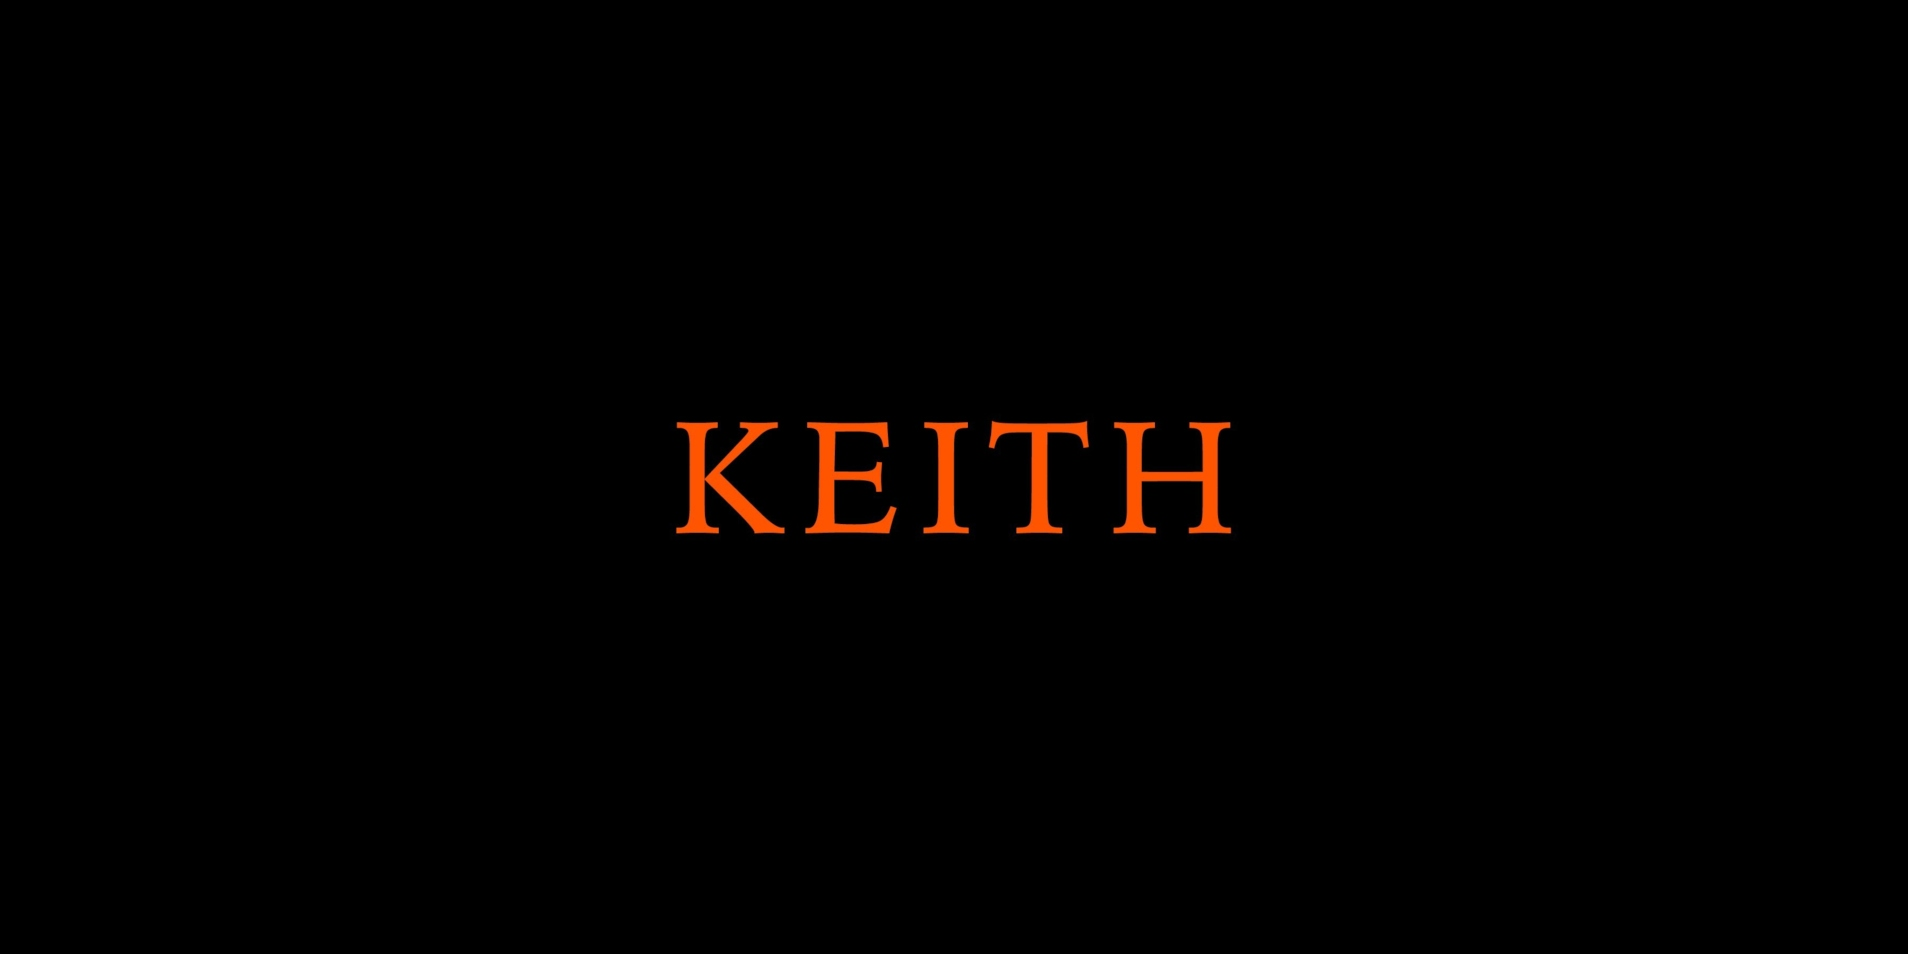 Albumism_KoolKeith_Keith_MainImage.jpg